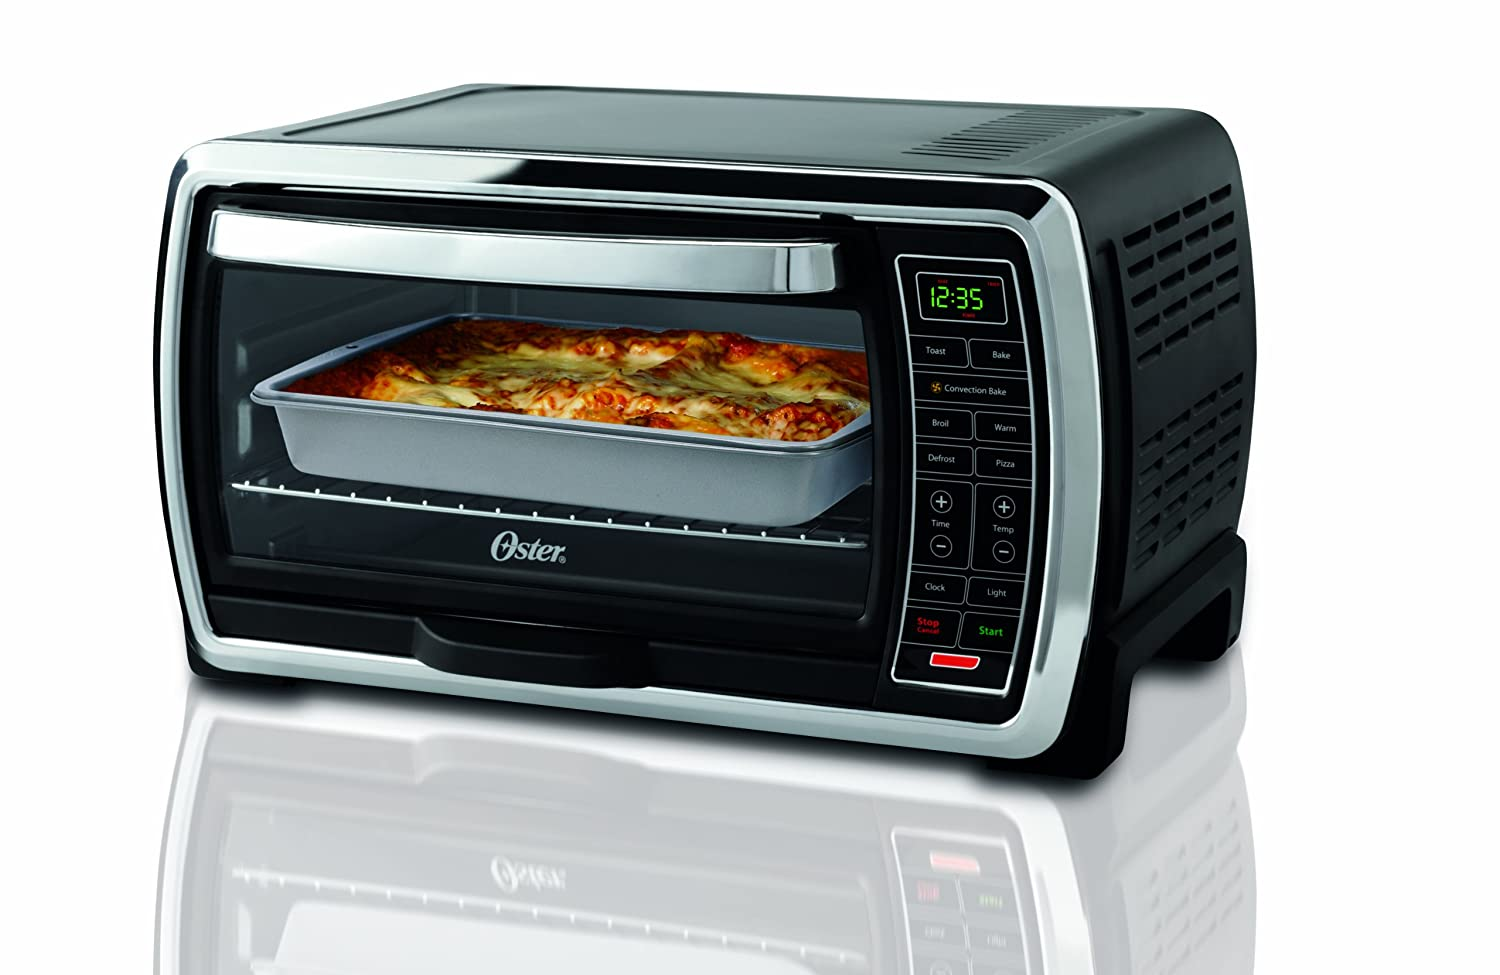 Oster Large Capacity 6-Slice Digital Convection Toaster Oven